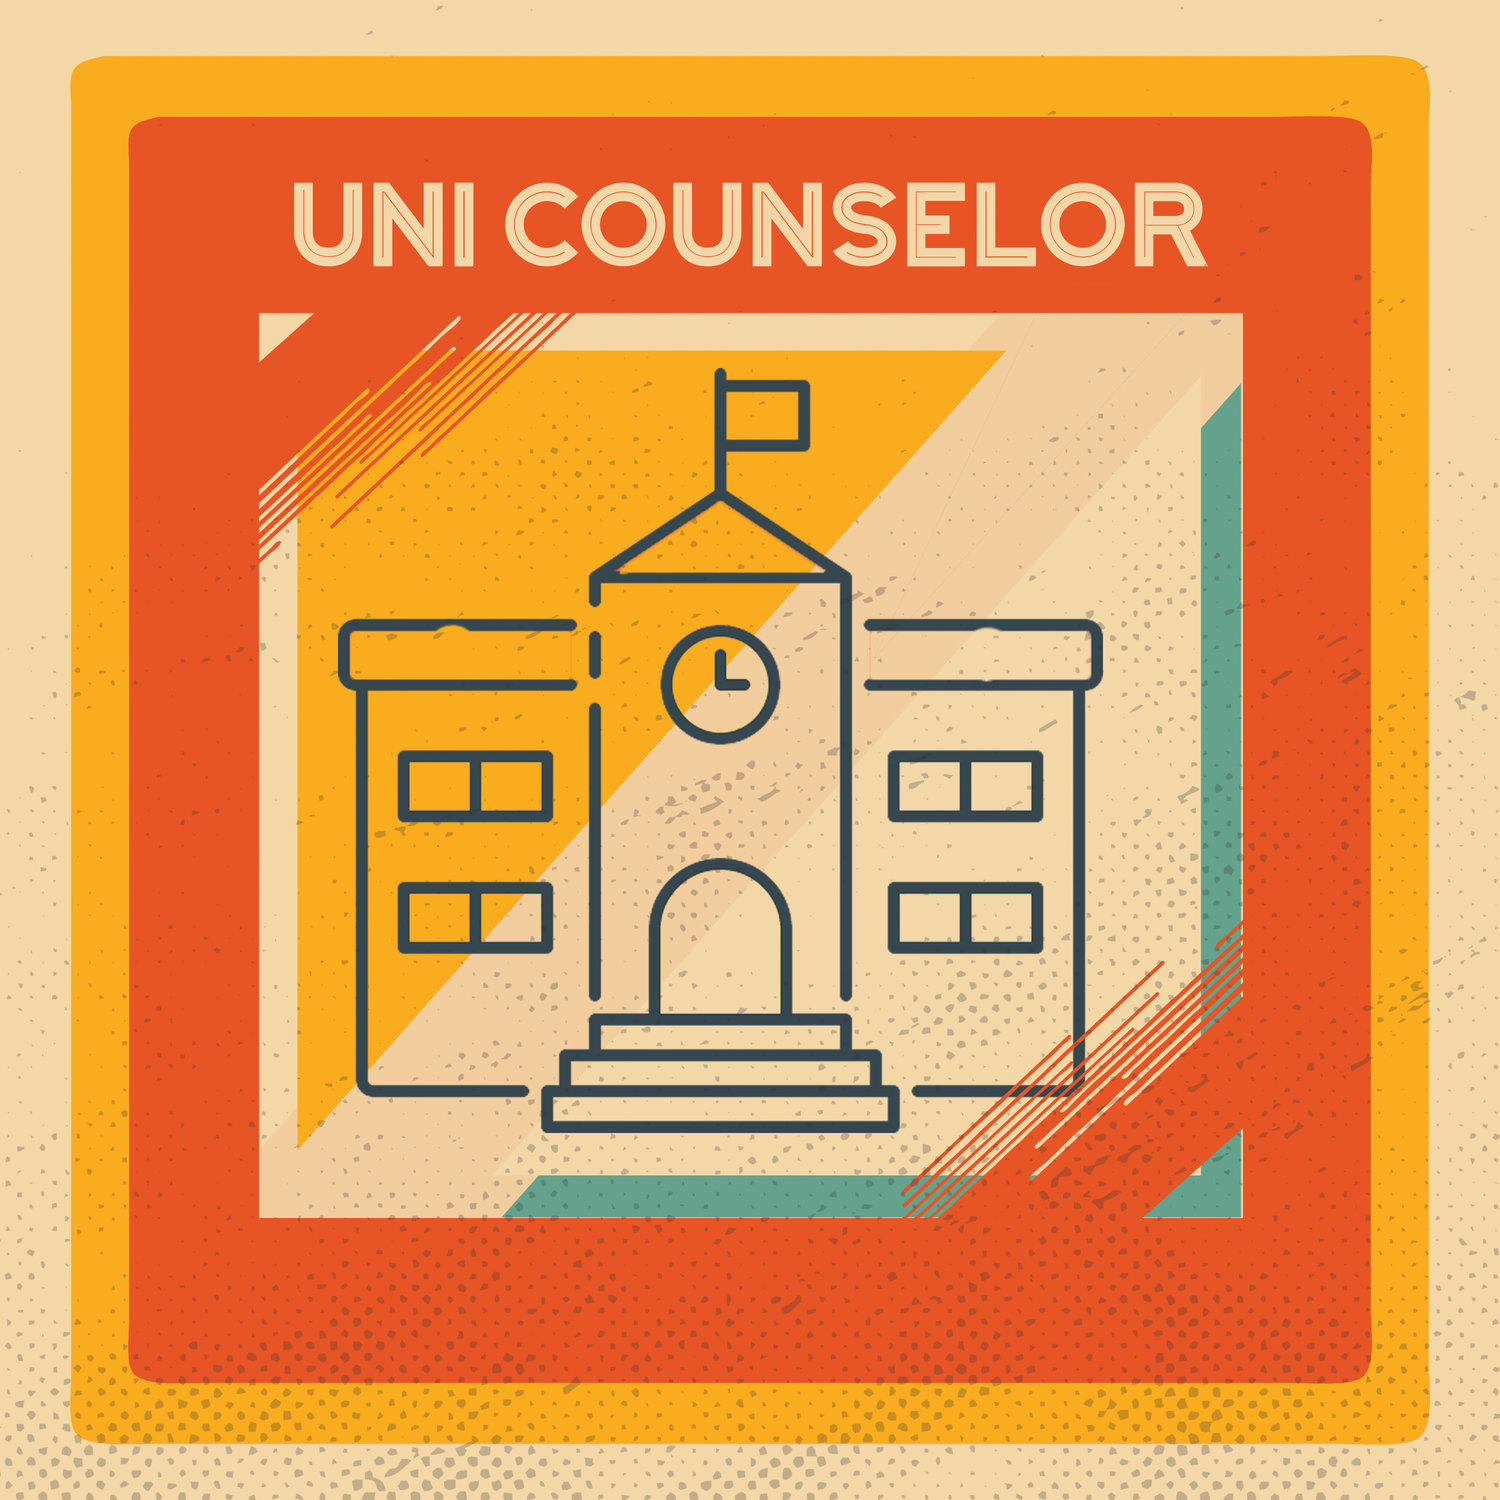 Uni Counselor